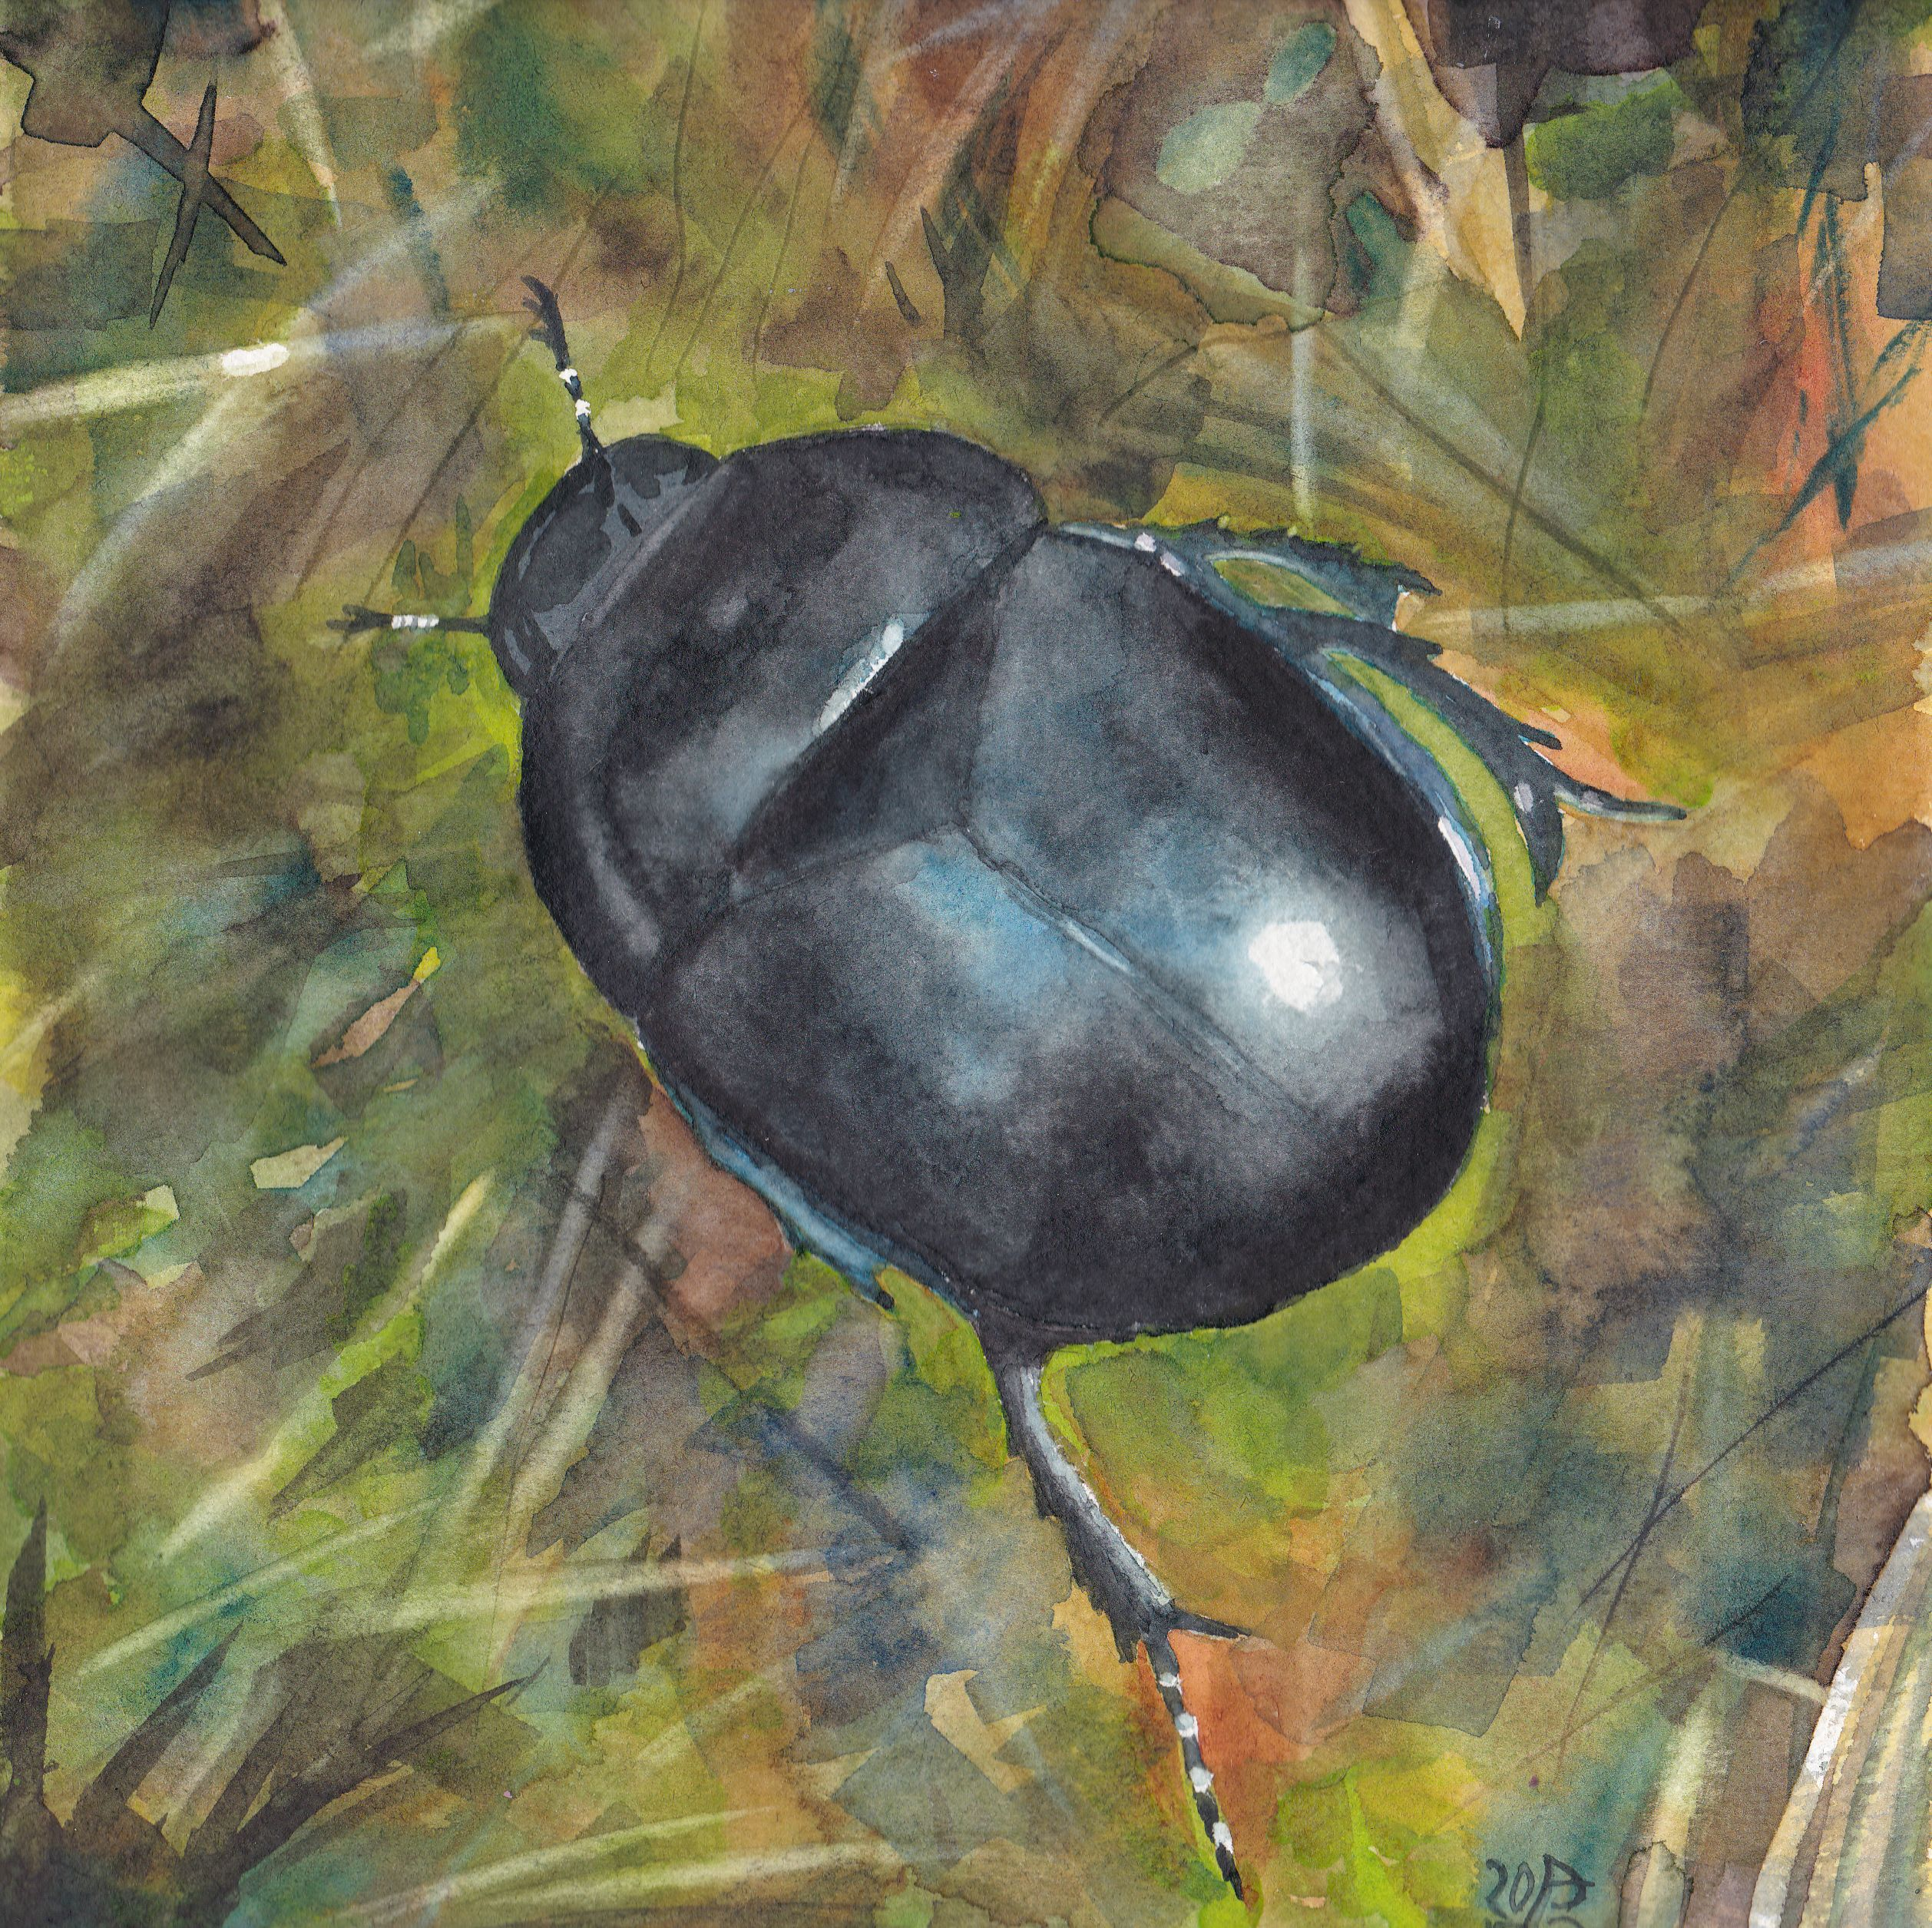 Käfer || Beetle Aquarell auf 200g/m ruaem Bütten-Aquarellkarton, 22,5 x 22,5 cm. 80 € (gerahmt). Watercolours on mould-made 200 gsm watercolour board, 8.9″ x 8.9″. $ 90 (framed).